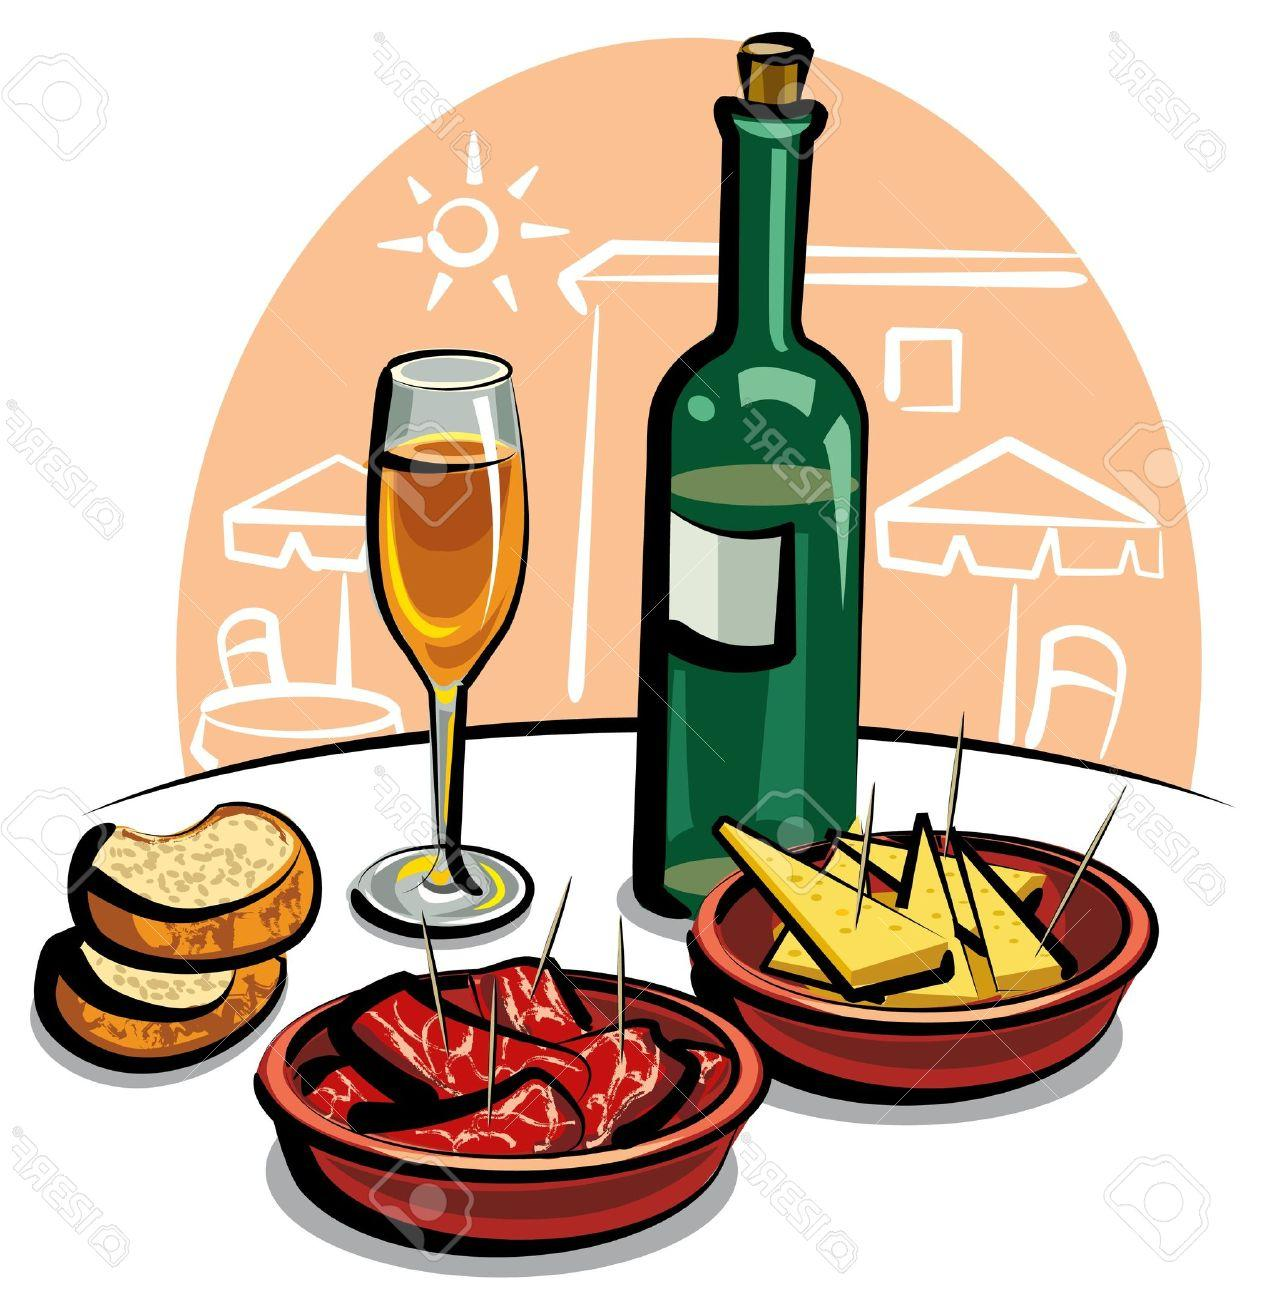 Cliparts free download best. Cookbook clipart appetizer